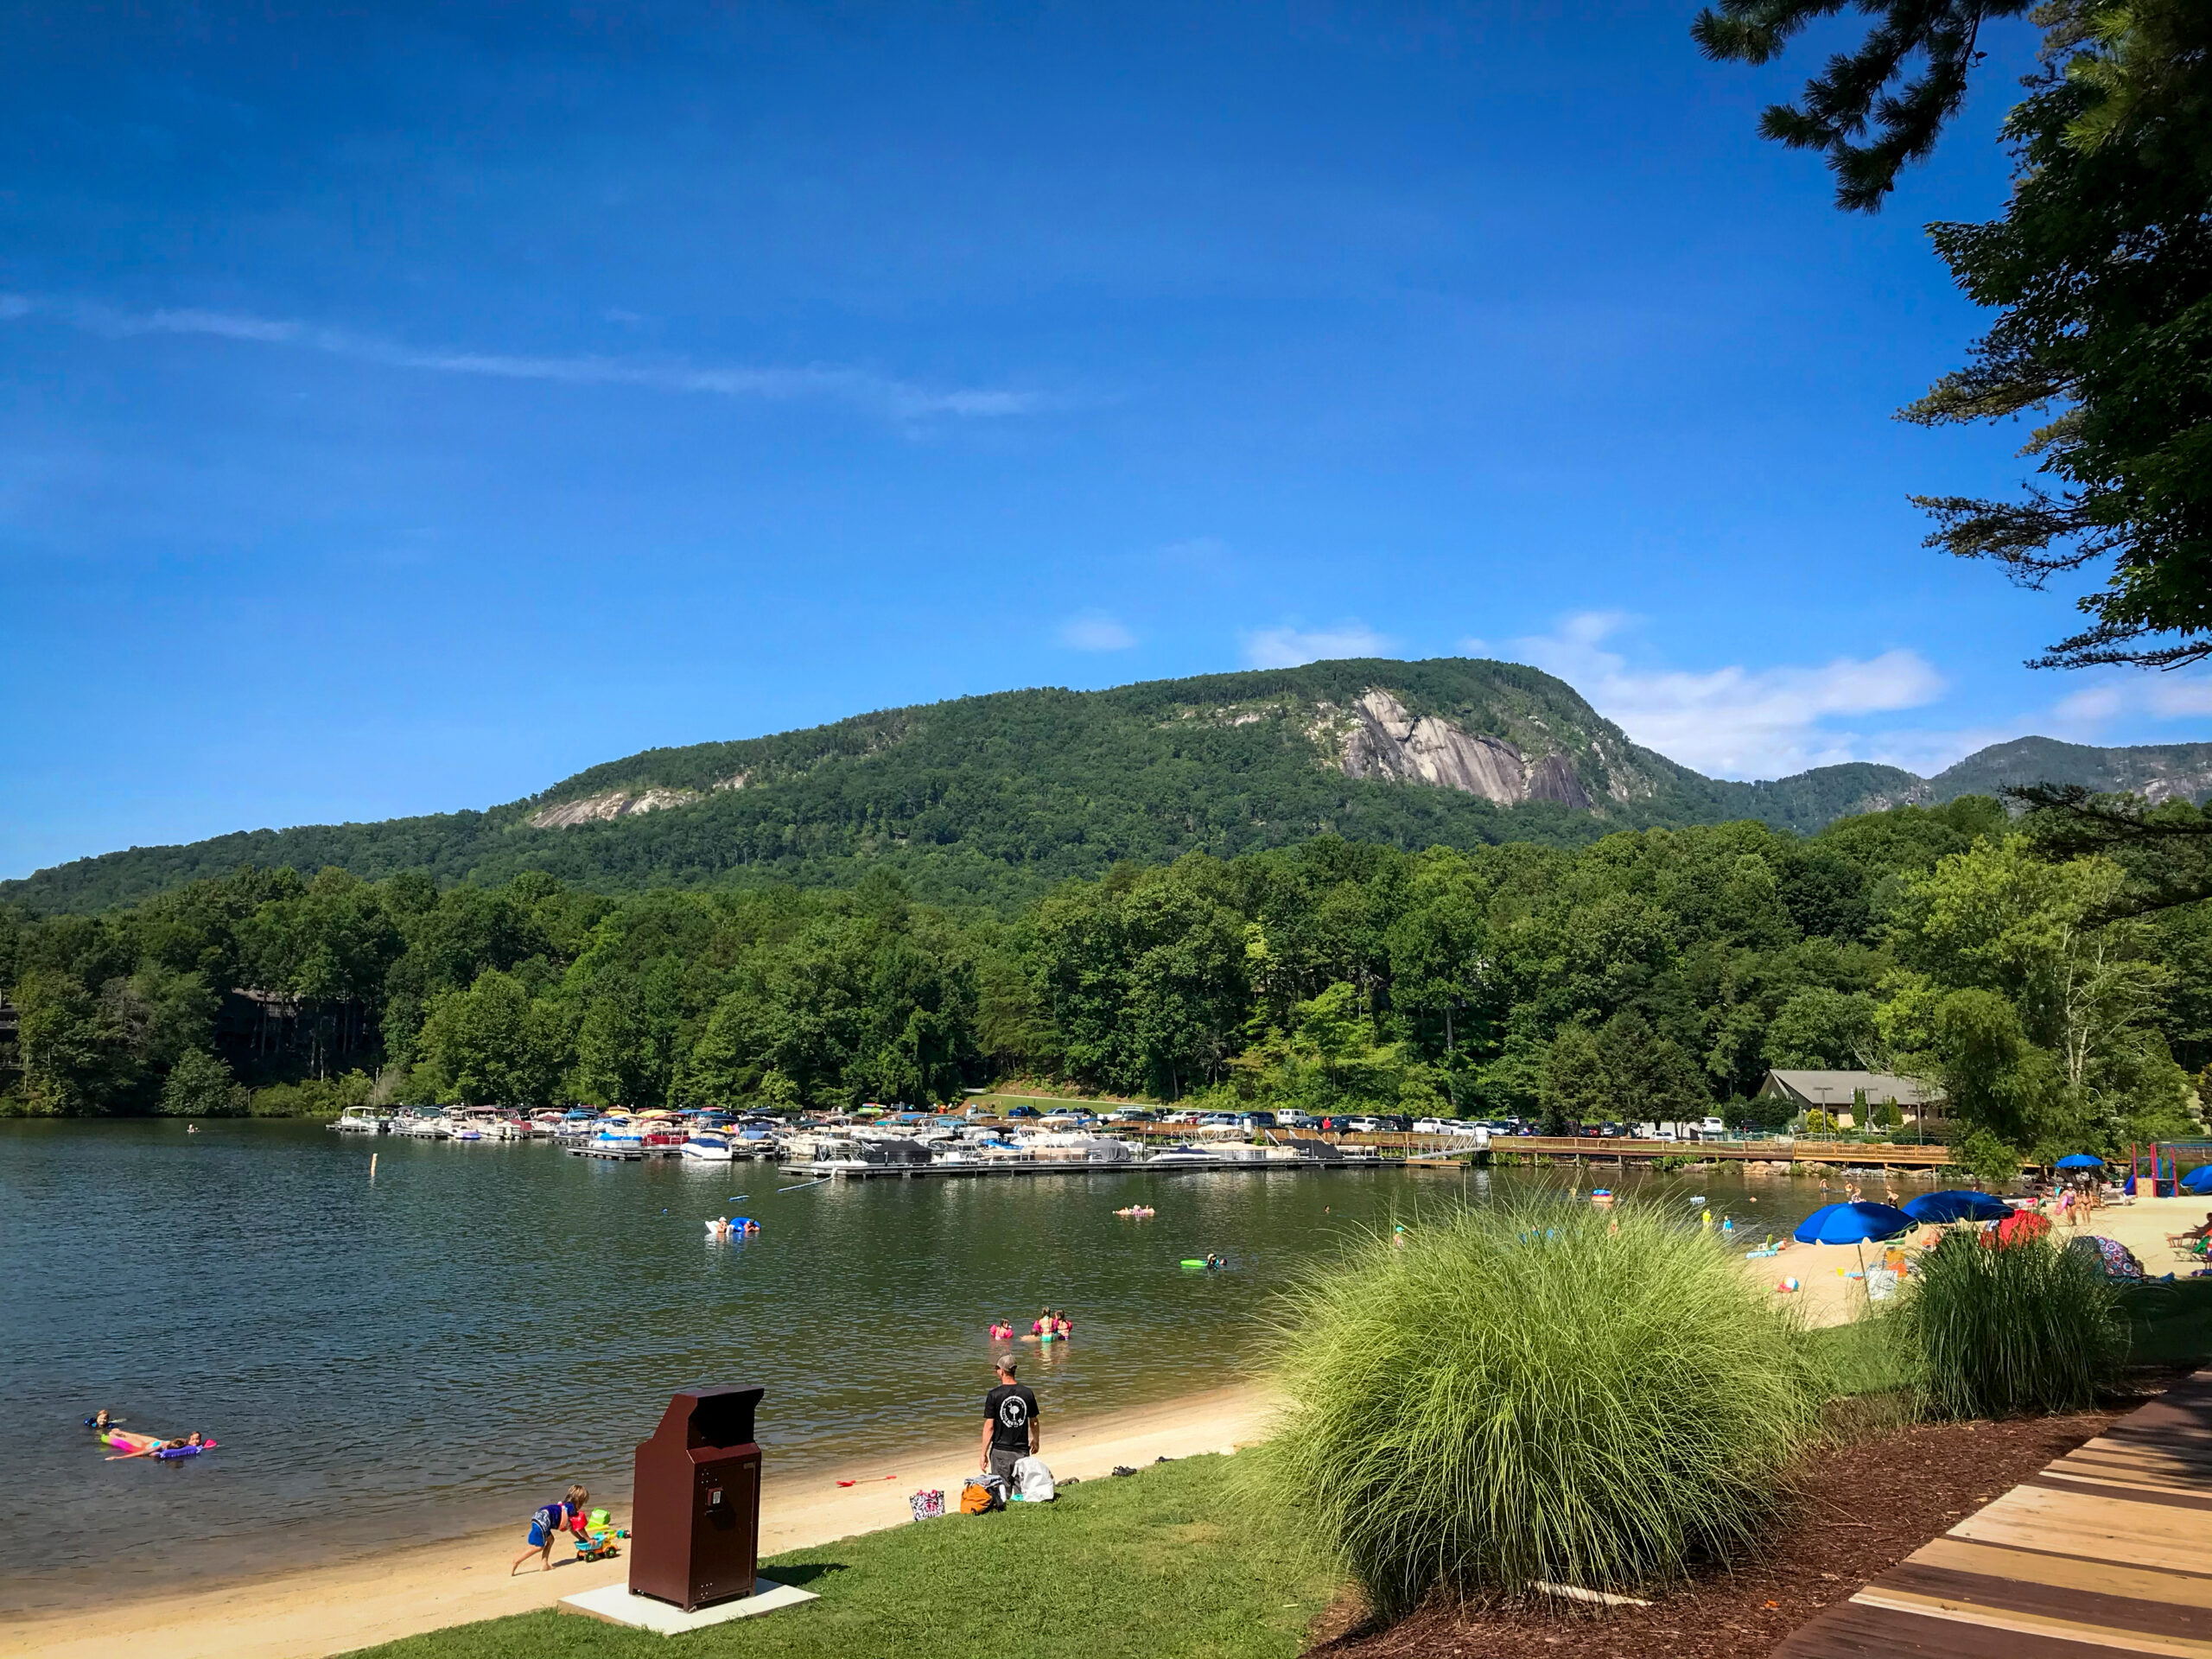 Rumbling Bald Resort On Lake Lure / Best Hotels In Asheville NC